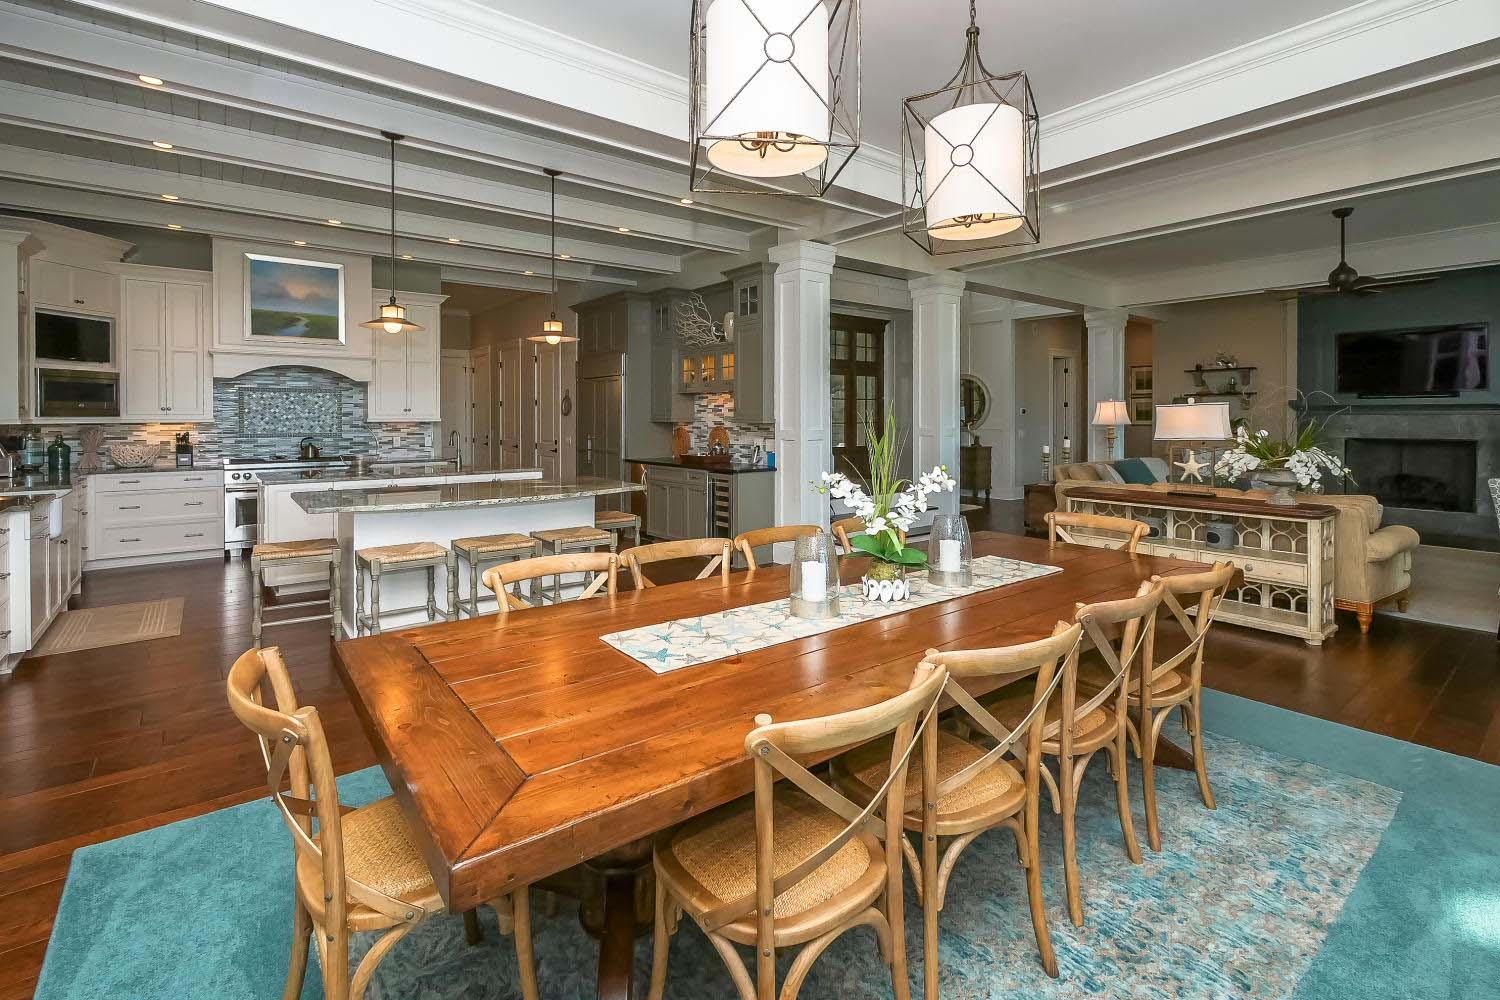 Dining table to kitchen and living room | Ocean Jewel